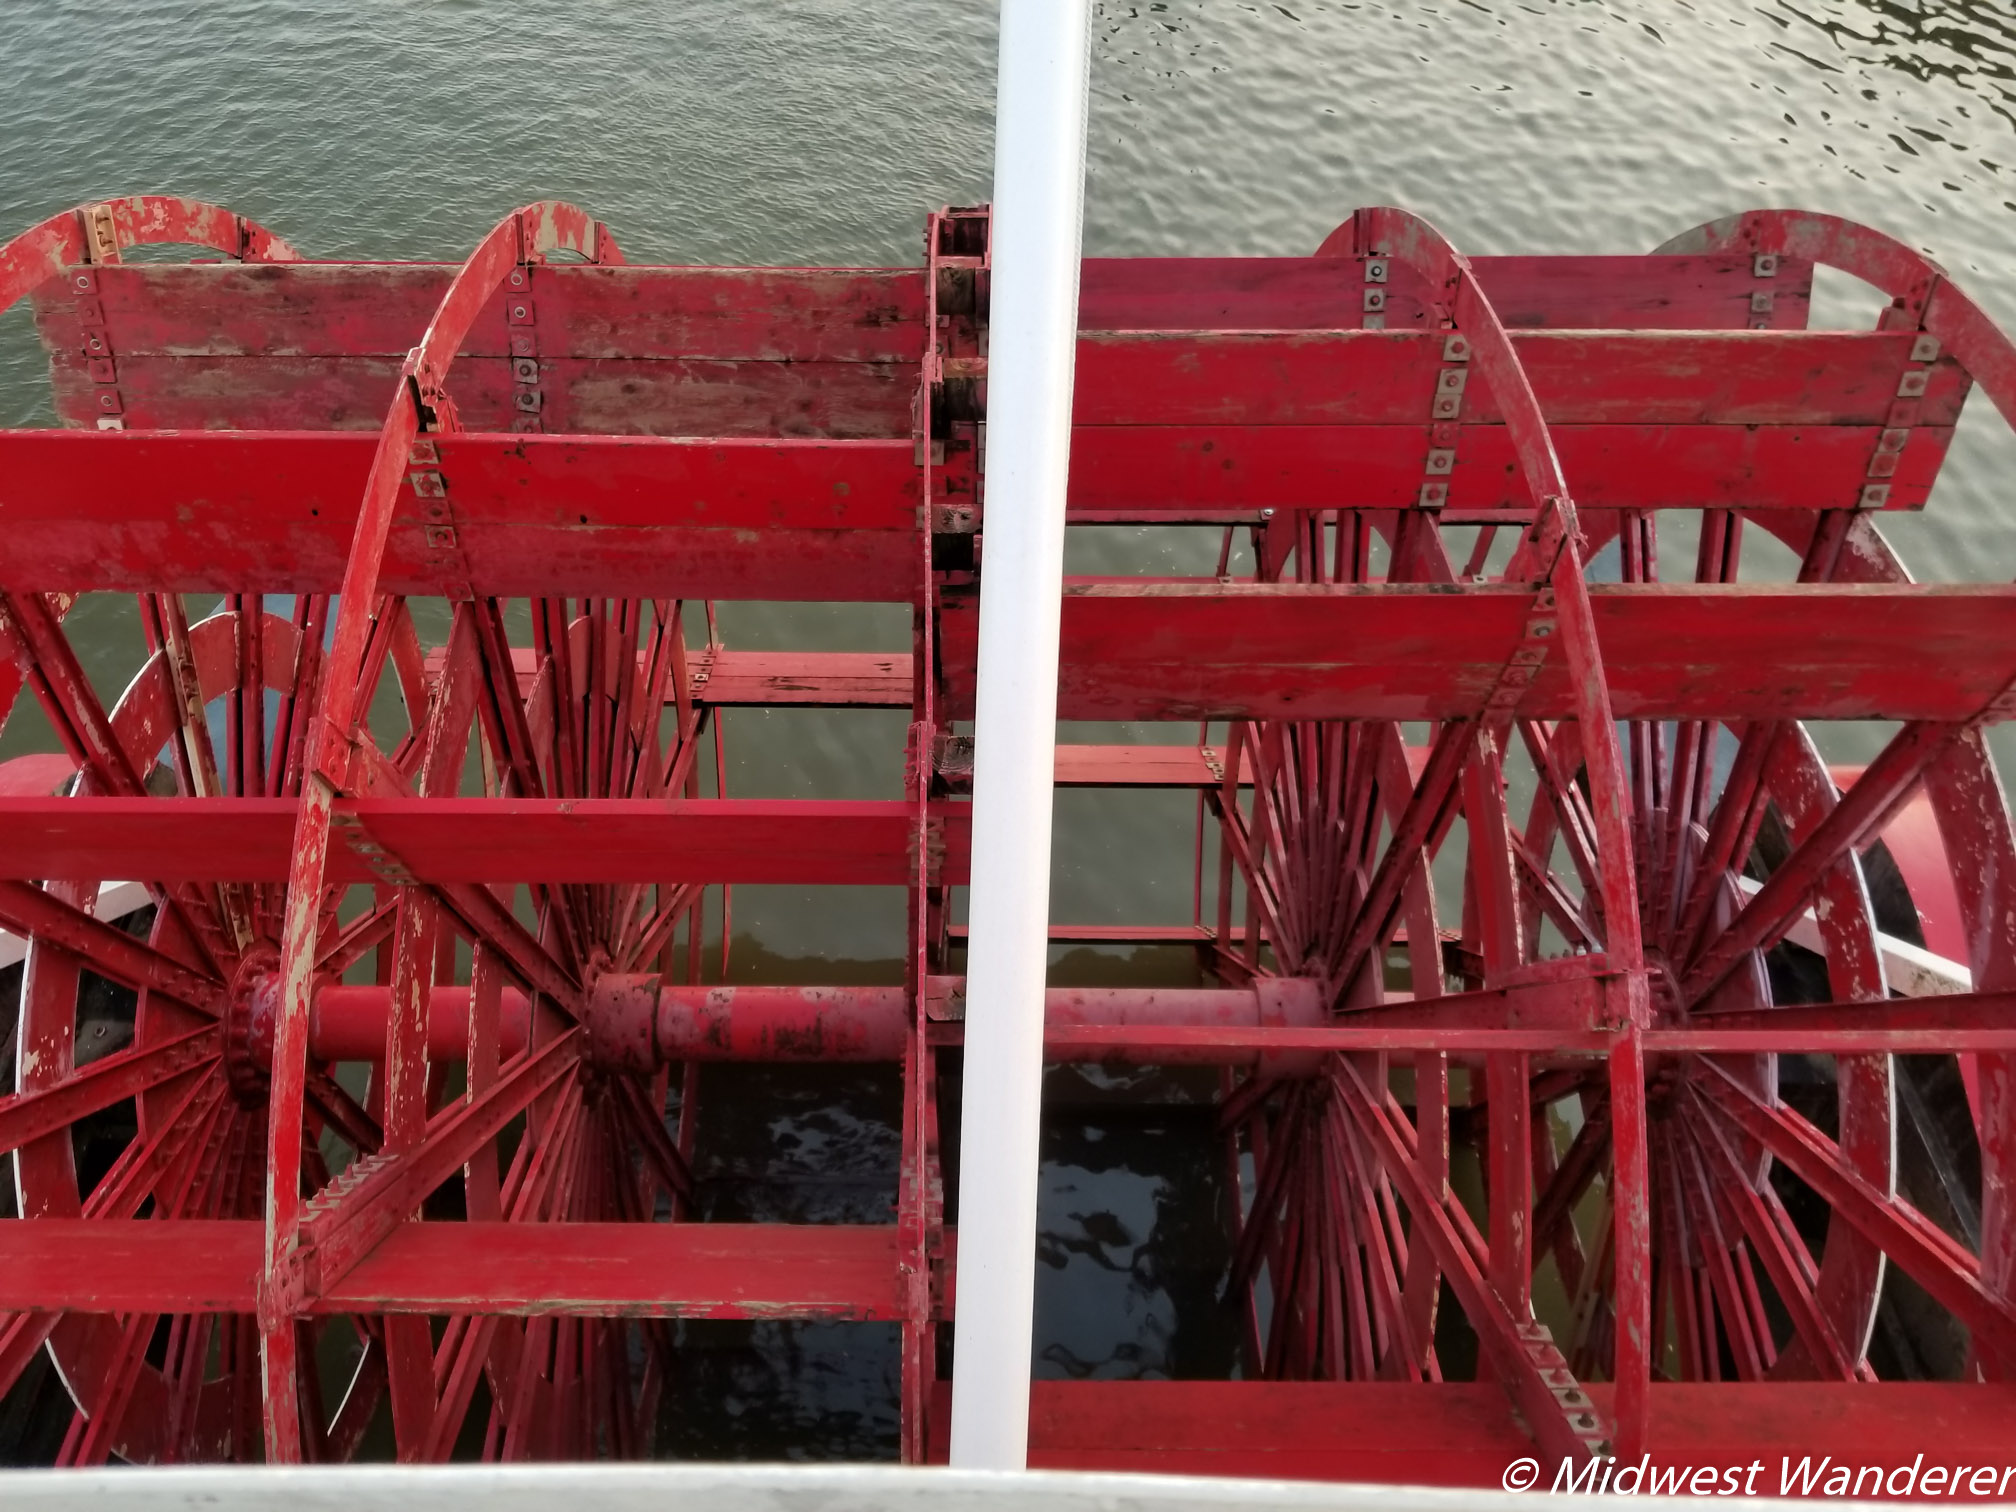 Spirit of Peoria paddlewheel